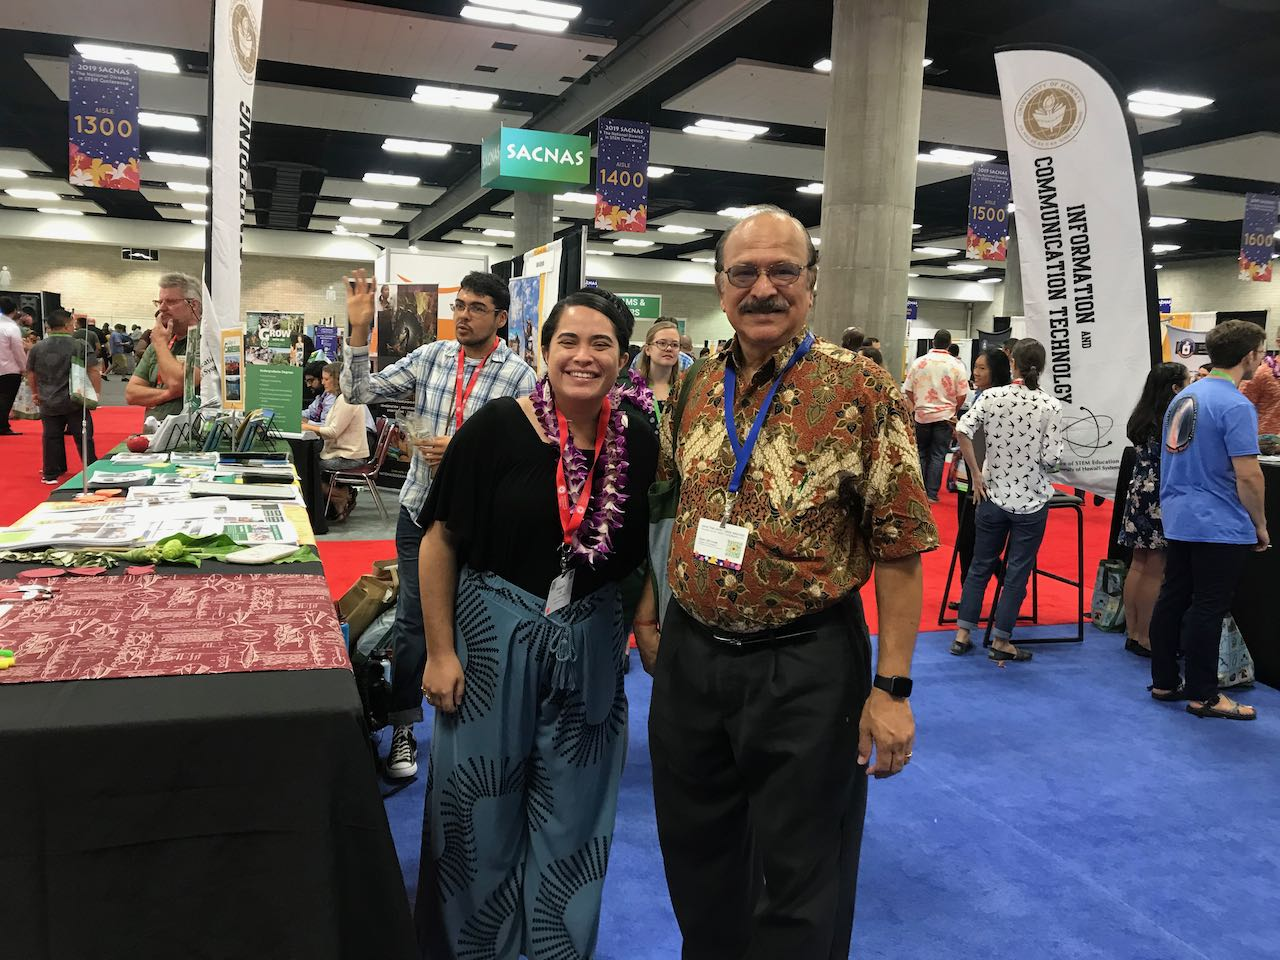 Awapuhi Lee and Dr. Nerurkar at SACNAS 2019